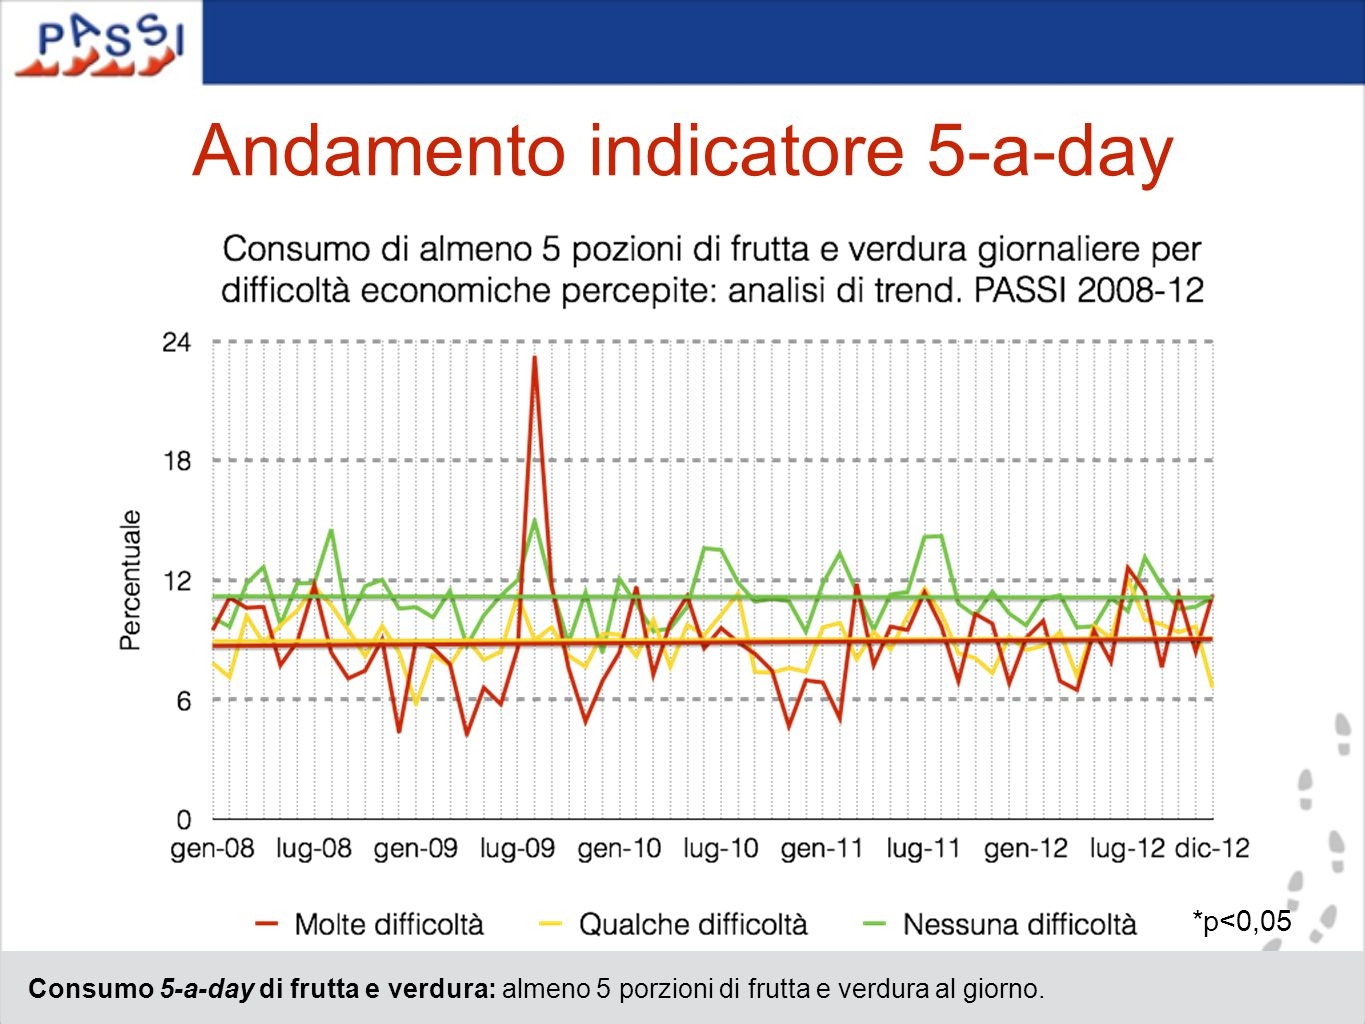 Andamento indicatore 5-a-day